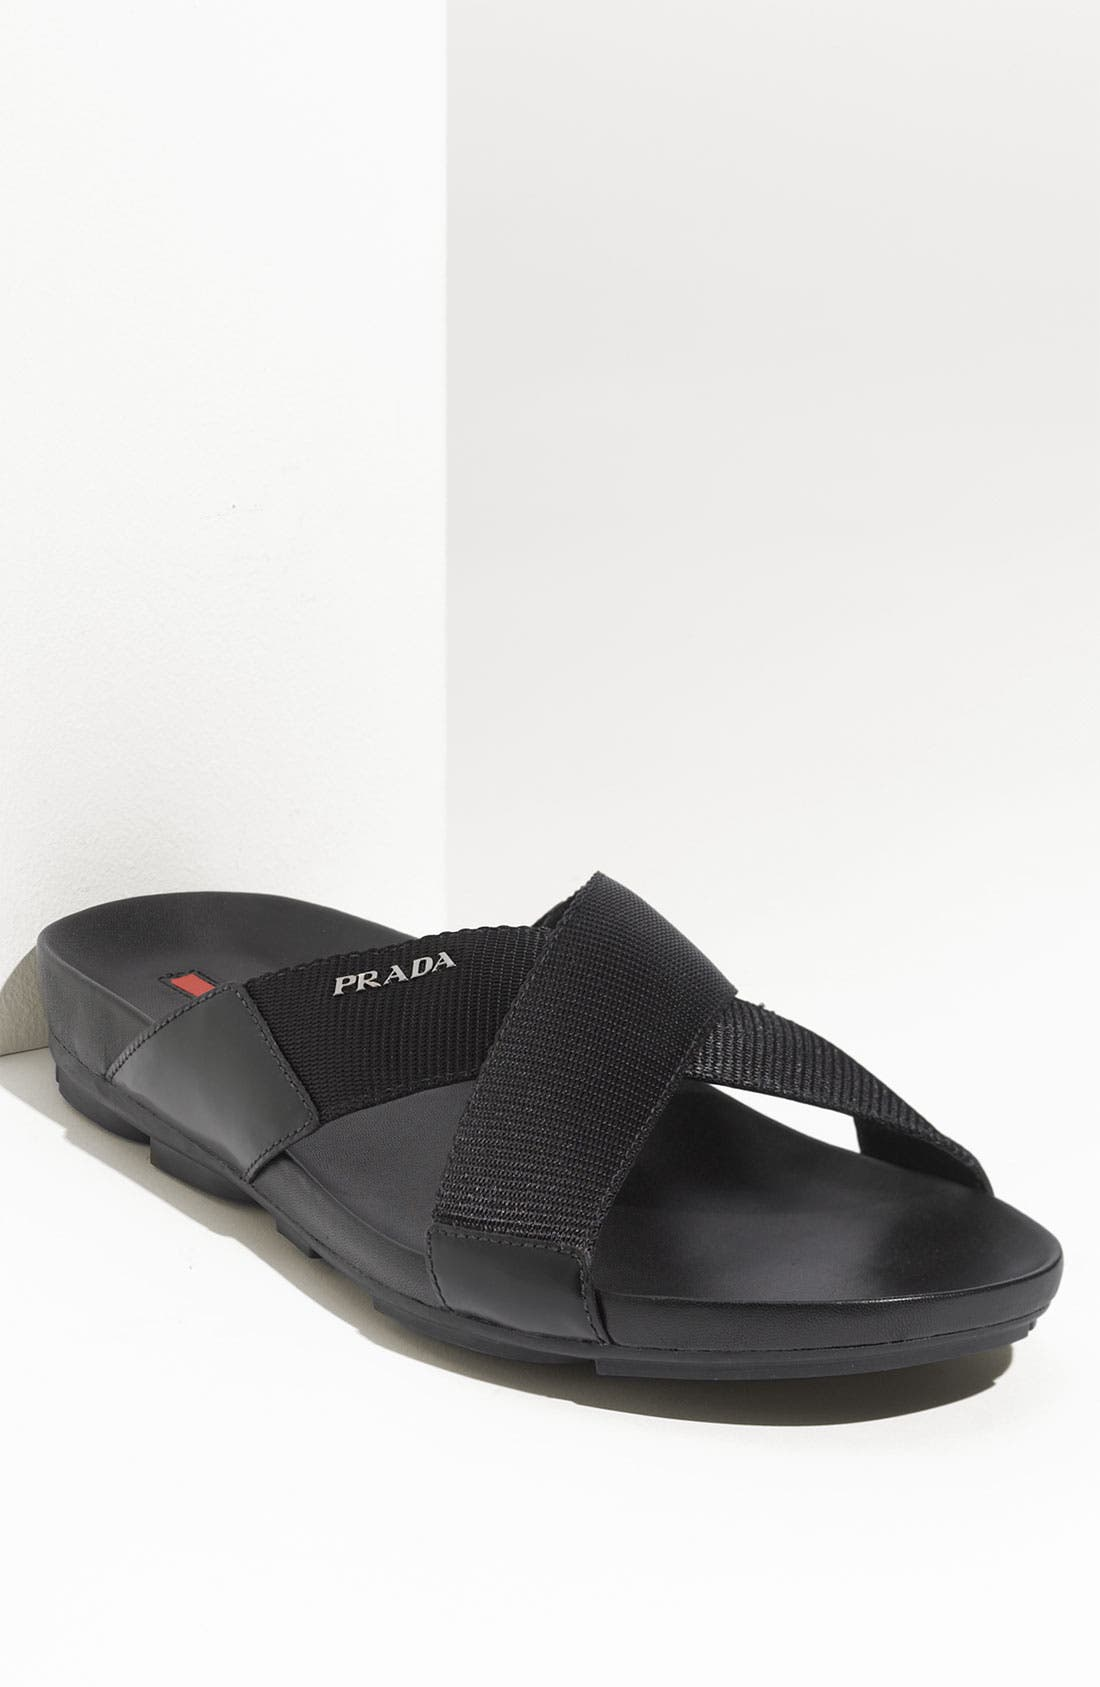 Main Image - Prada Cross Strap Nylon Slide